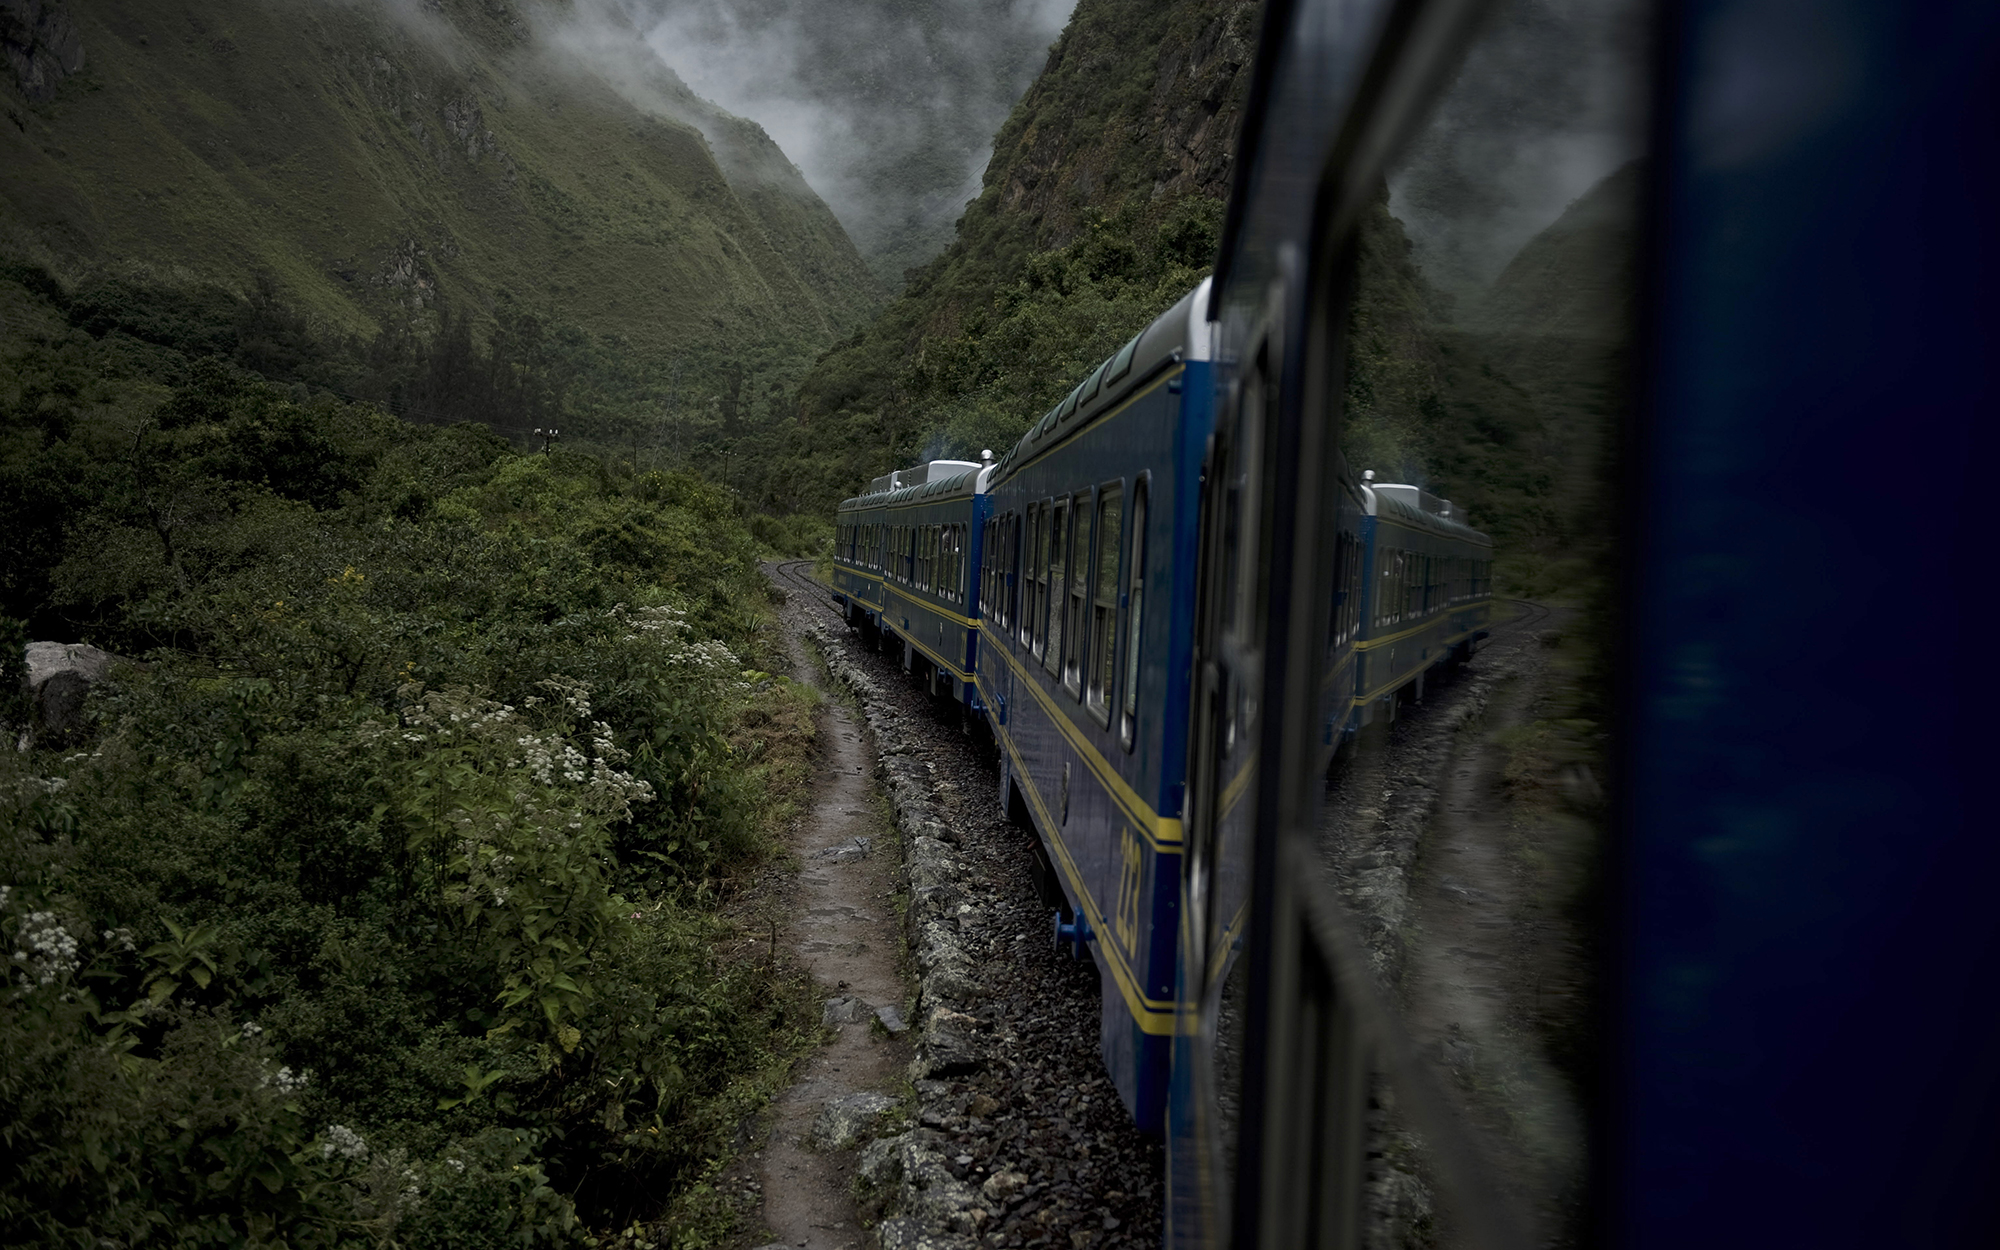 View from the train heading to the Machu Picchu achaeological site, on April 1 2010. The formal reopening of the ancient Inca citadel was held Thursday, with a hand from Hollywood actress Sarandon. The 15th-century city perched around 2,500 meters (8,200